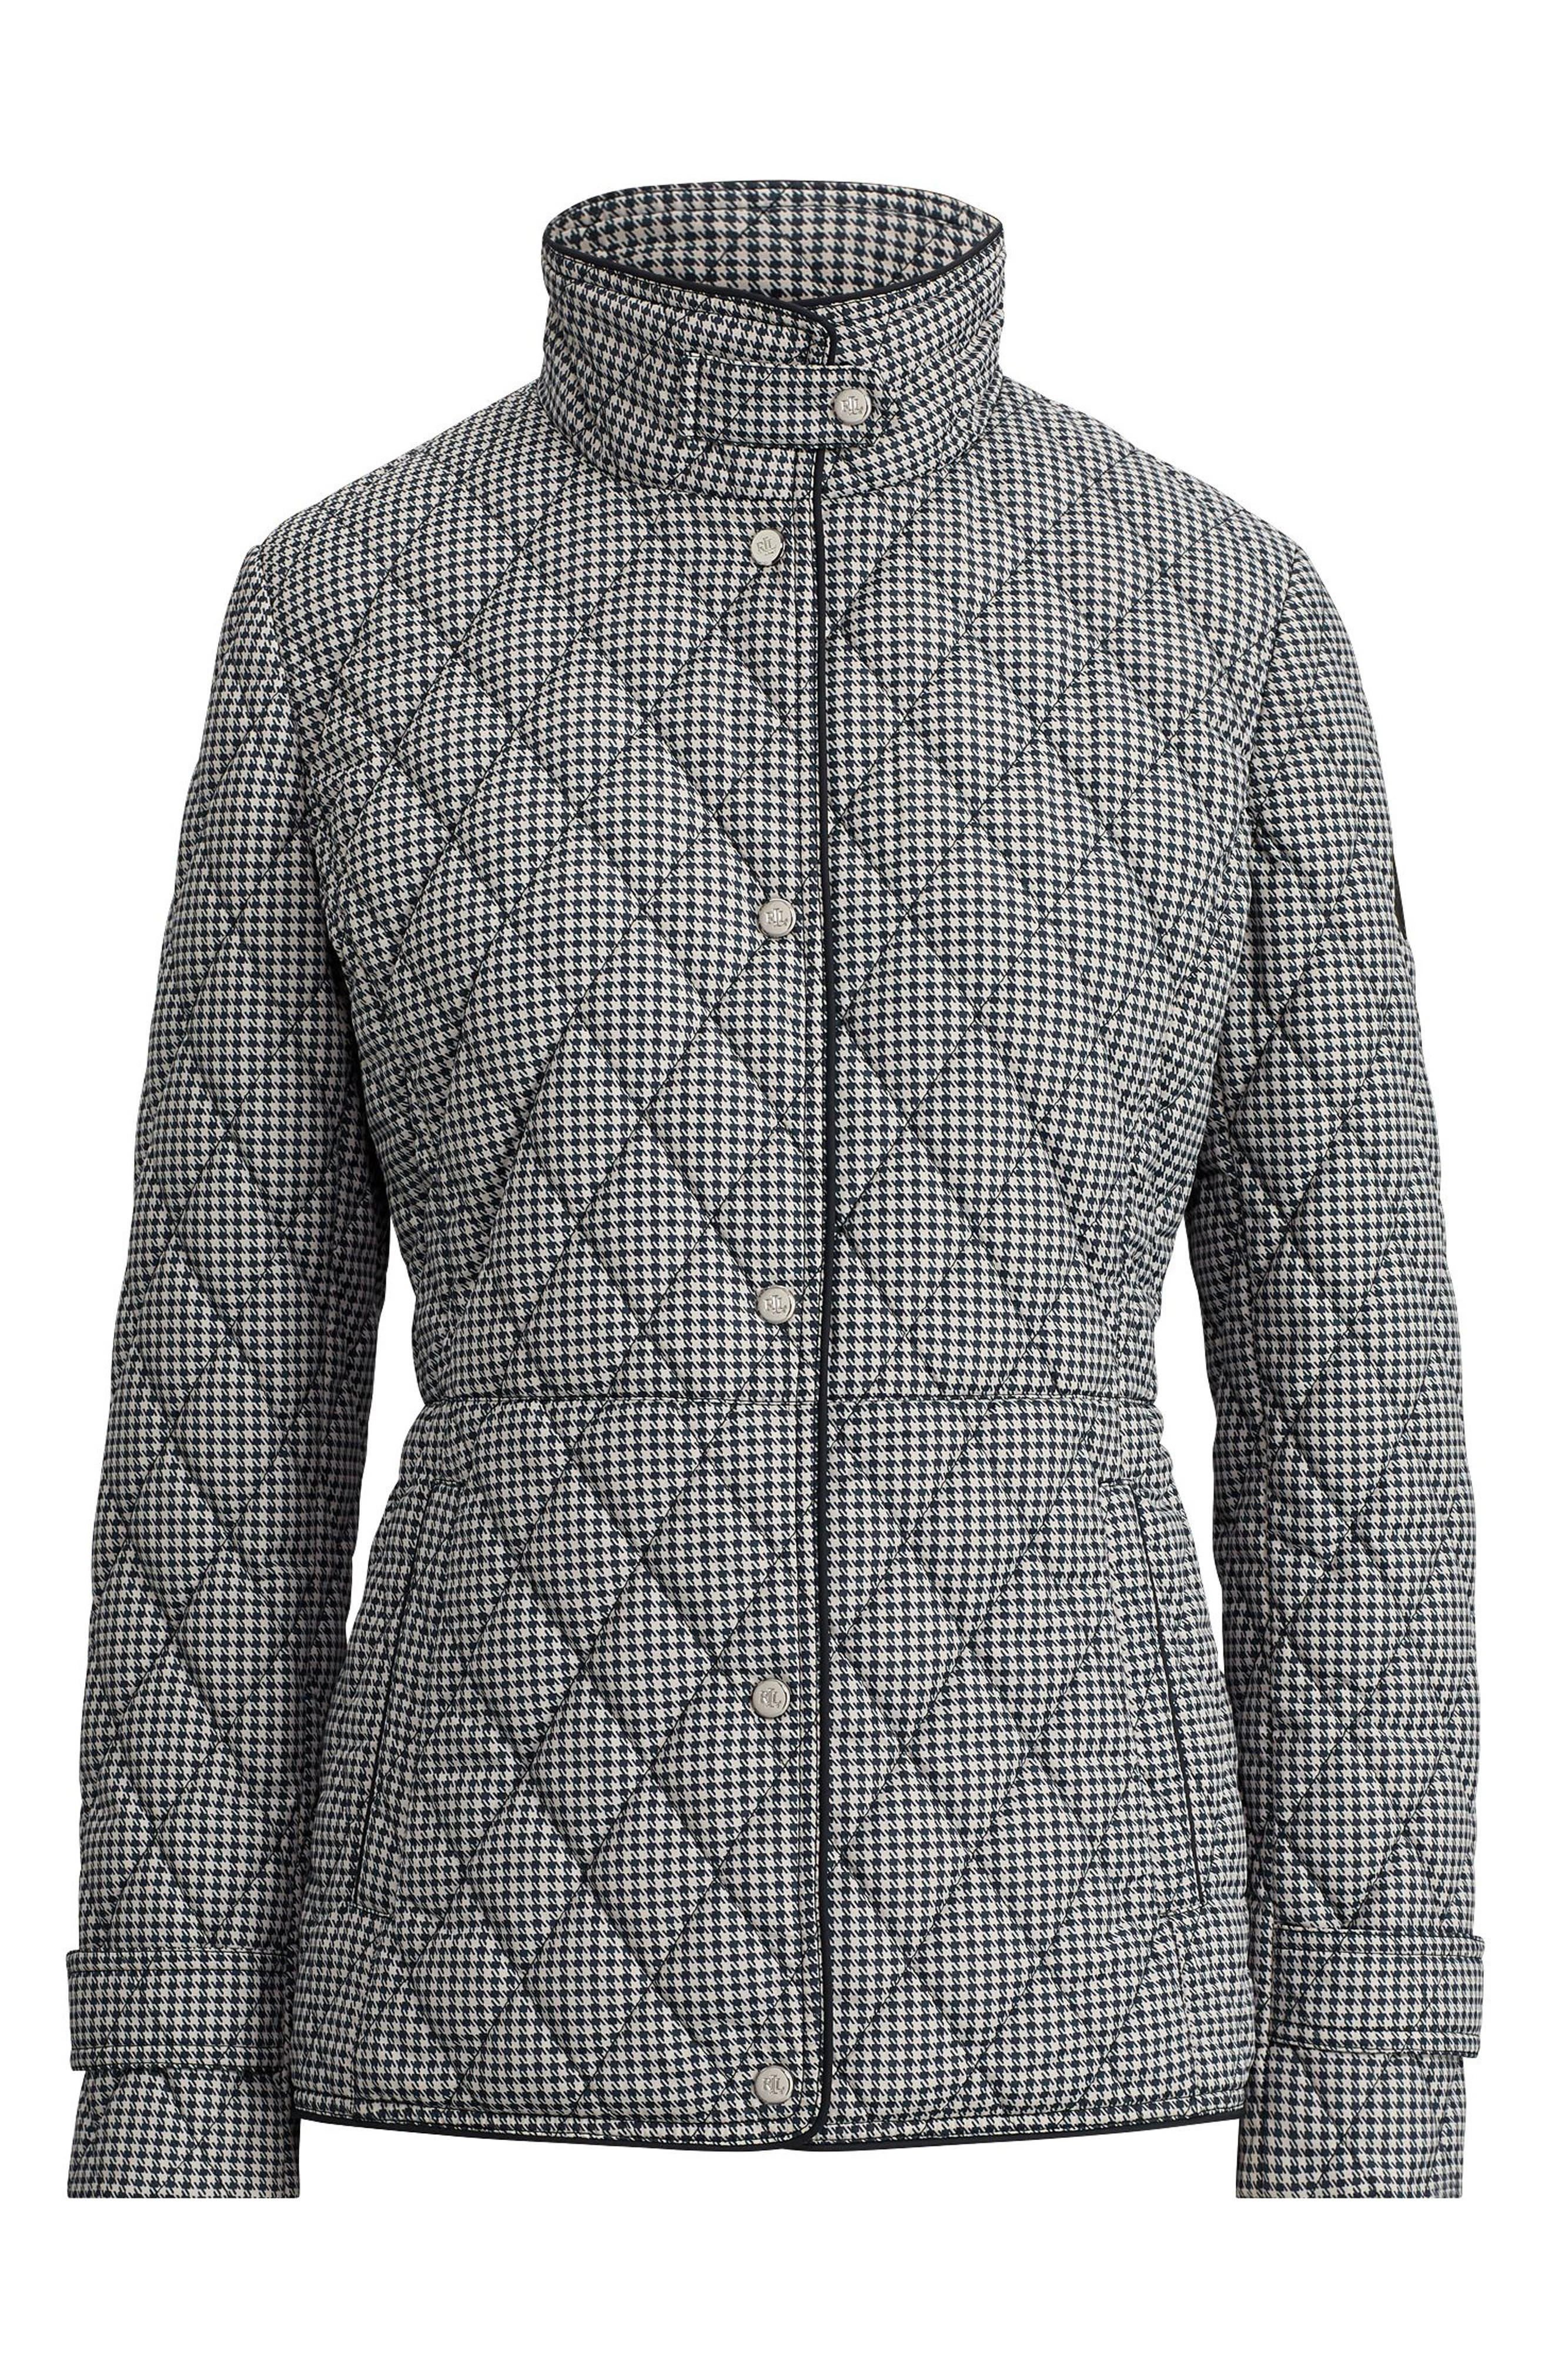 LAUREN RALPH LAUREN, Houndstooth Quilted Military Jacket, Alternate thumbnail 4, color, DK NAVY HOUNDSTOOTH